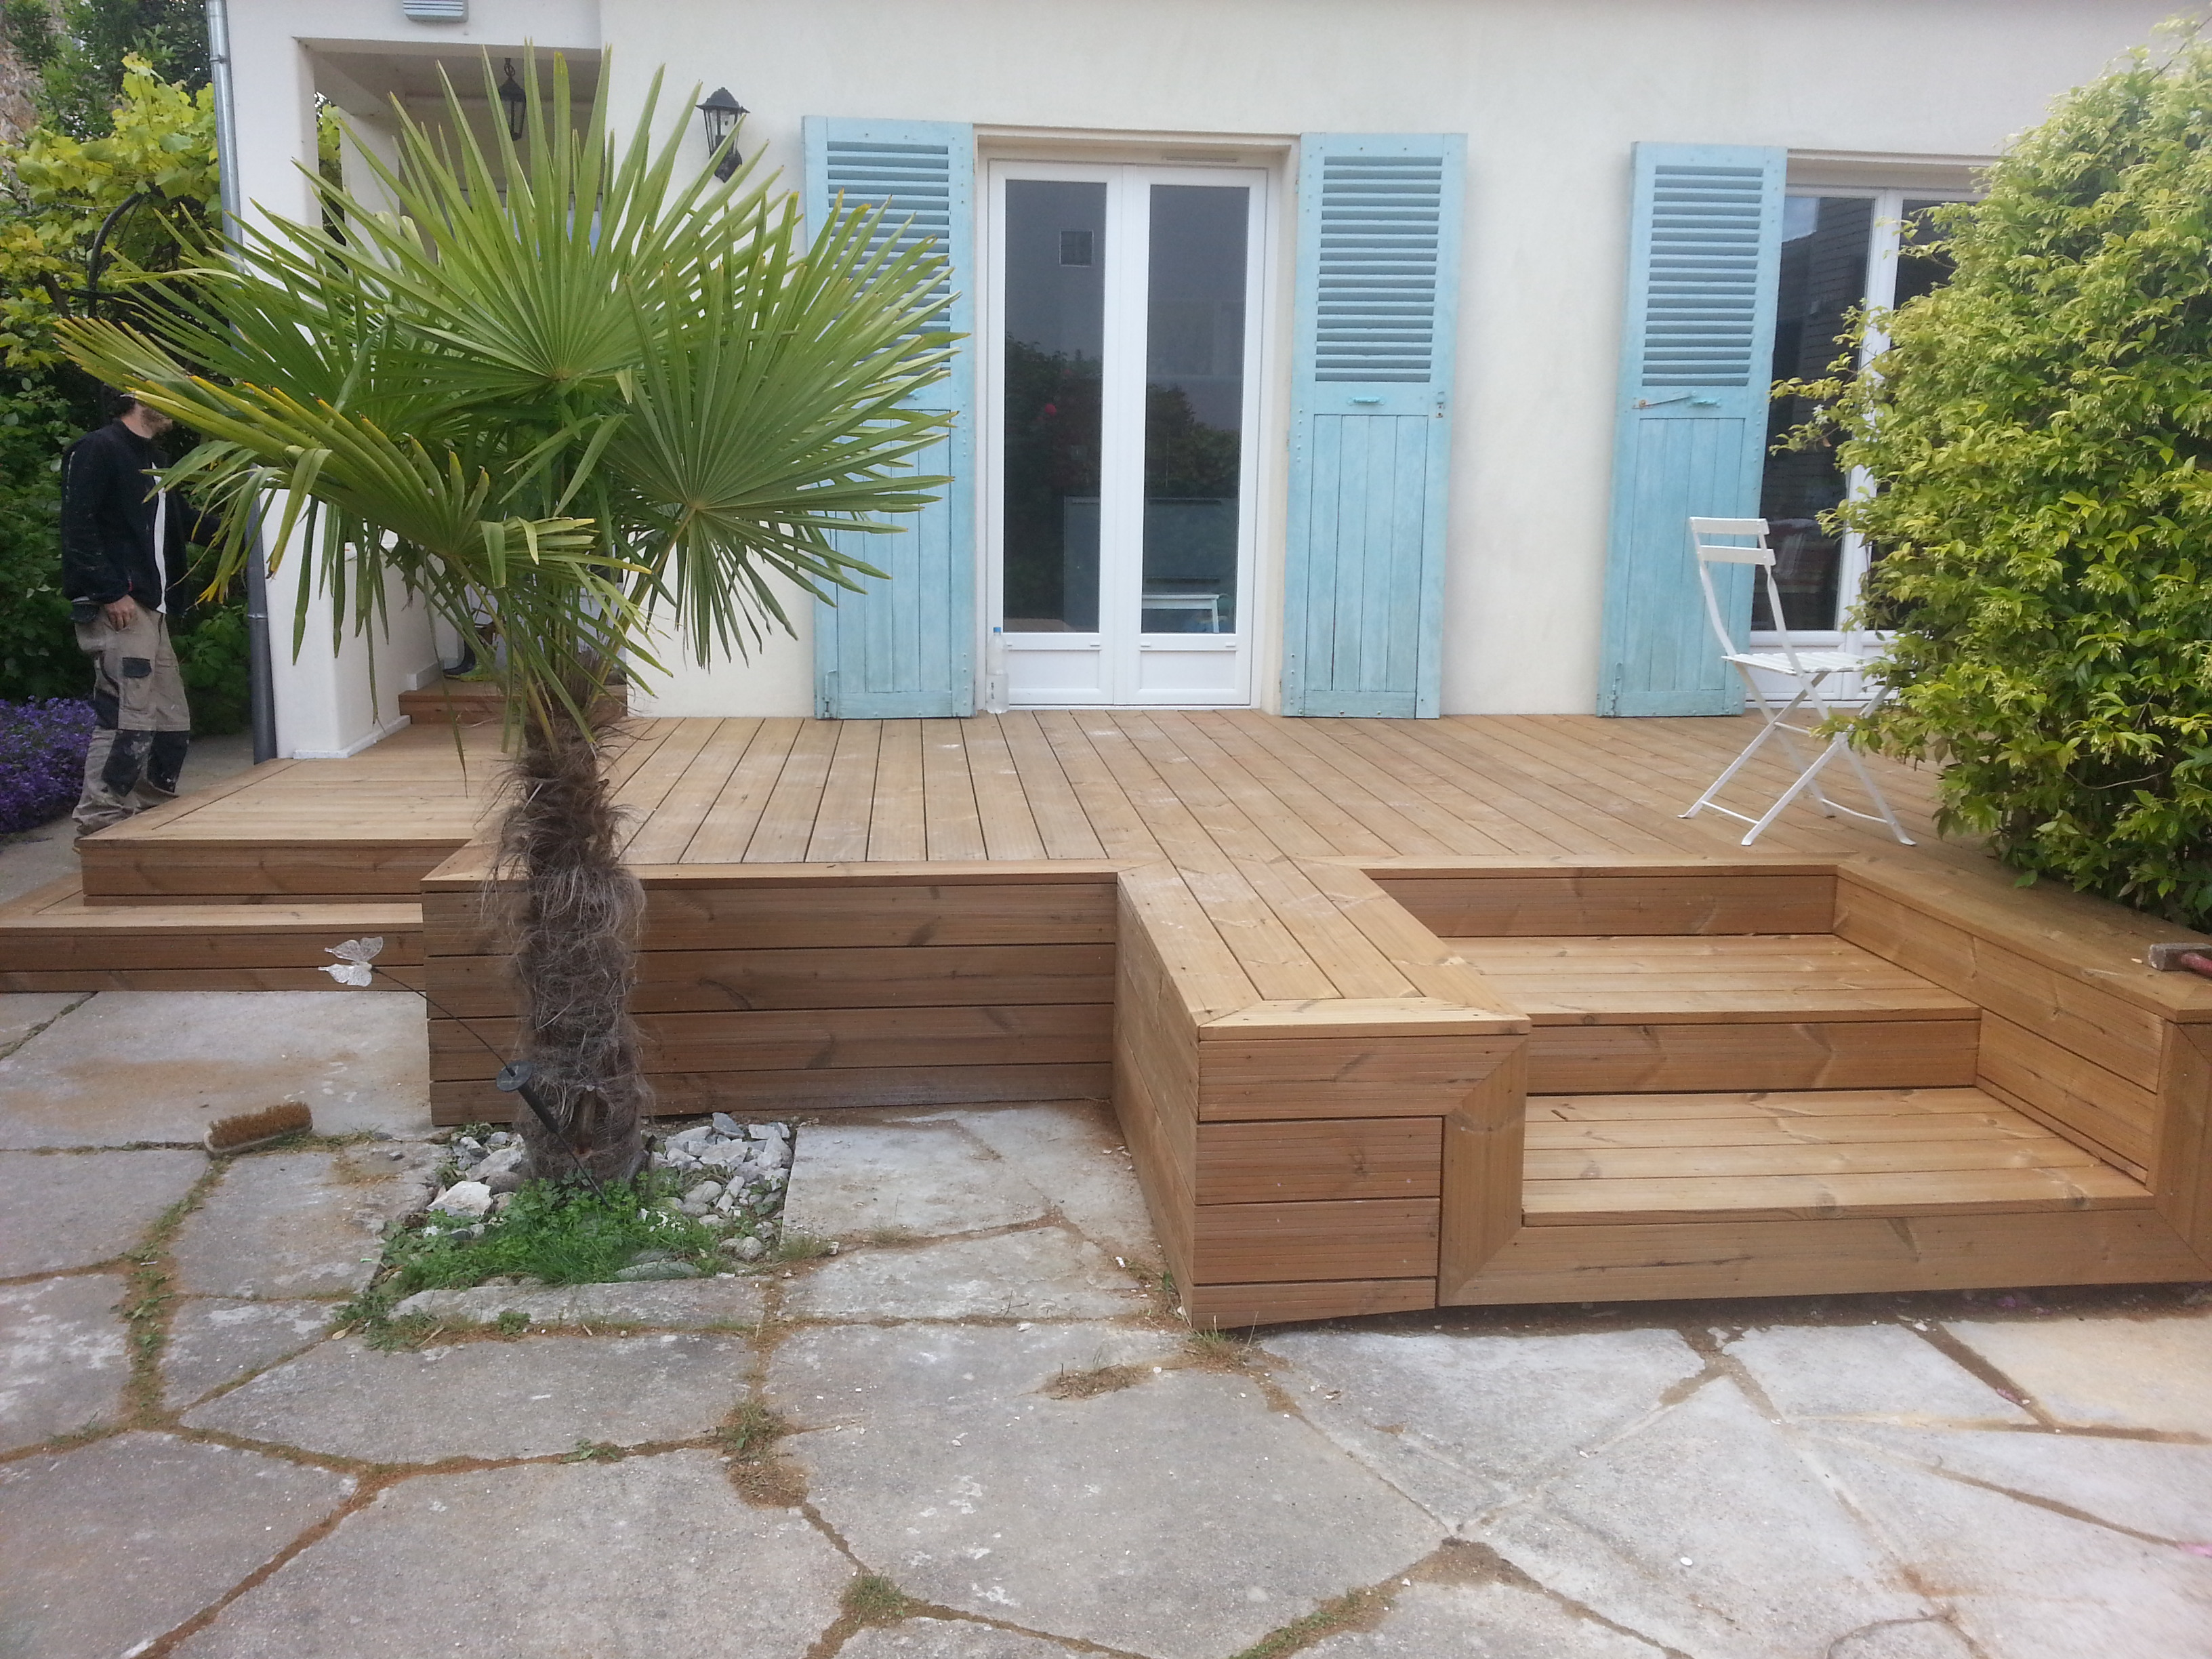 Amenagement terrasse exterieur meilleures images d for Creation jardin exterieur